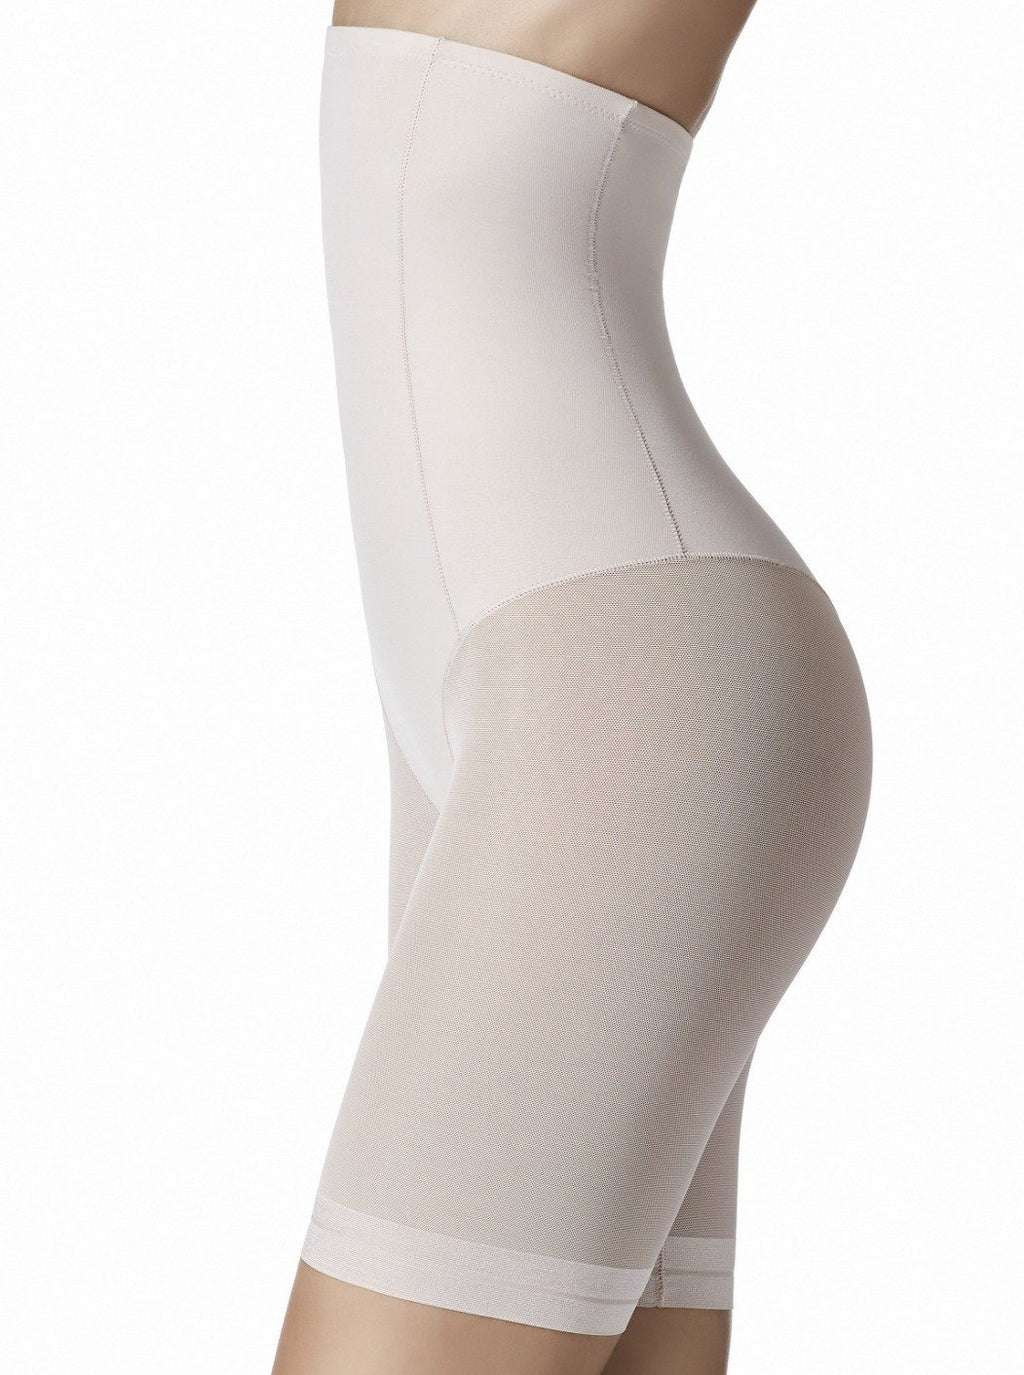 Ivory, dune or black. Perfect figure and thigh shaping!  Reduces up to one size or more due to its strong shaping ability. This shaping panty is constructed ergonomically to fit and control your every curve. Fabric guarantees compression while still remaining comfortable.